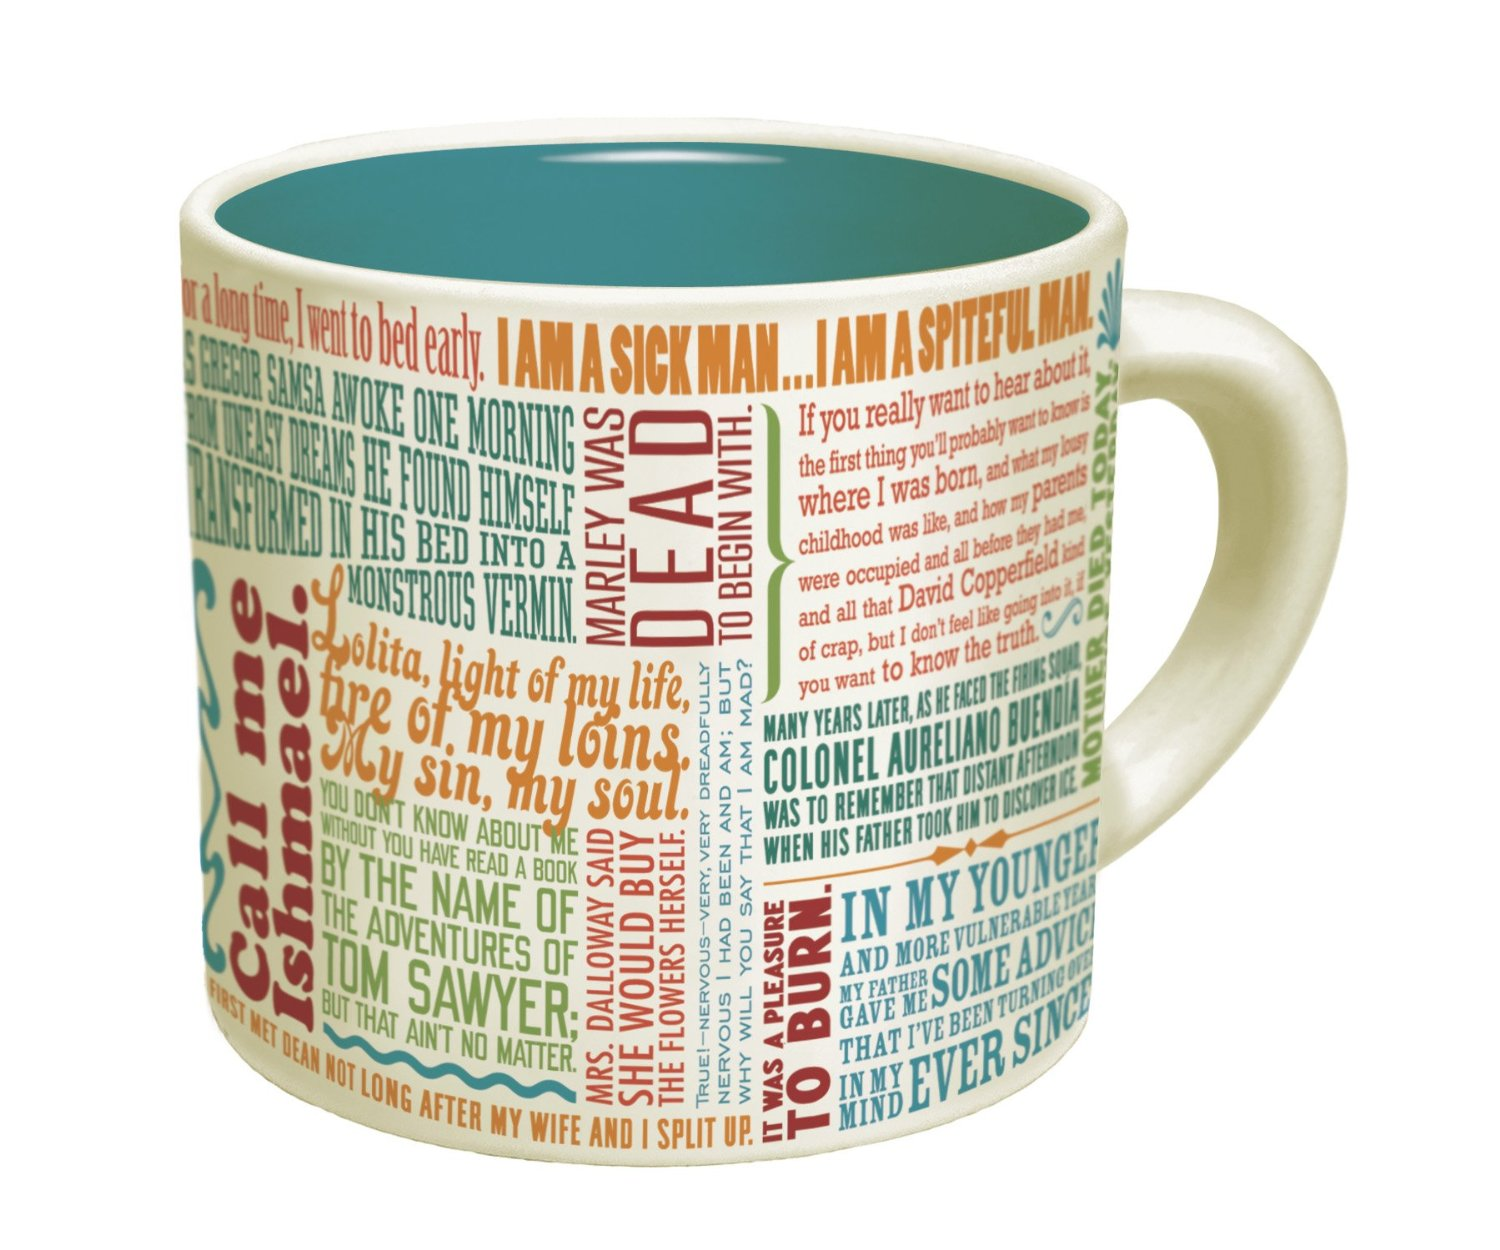 Great First Lines of Literature Mug